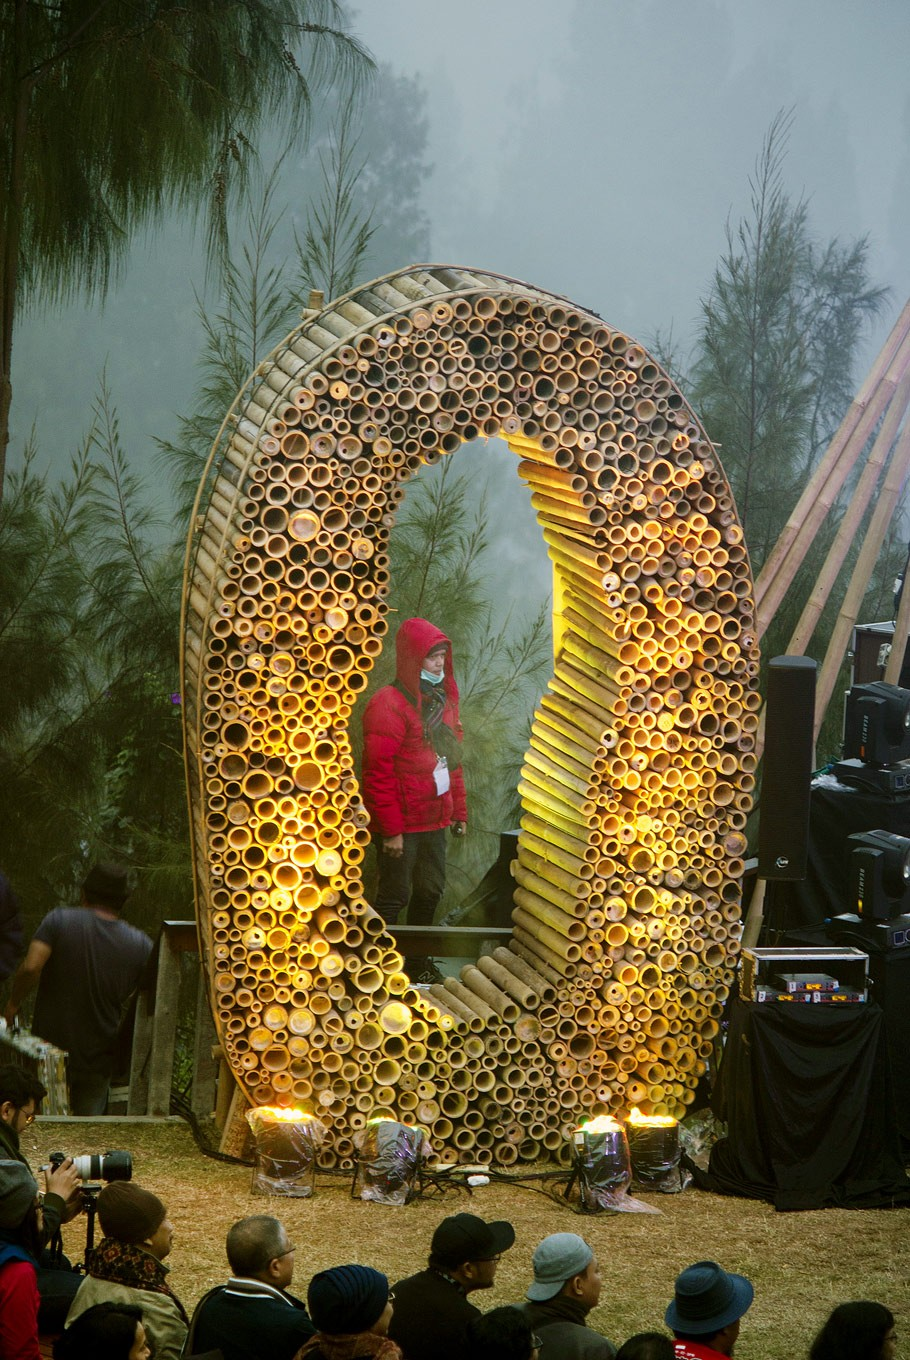 Into details: A bamboo installation was one of the festival's signature stage decorations.